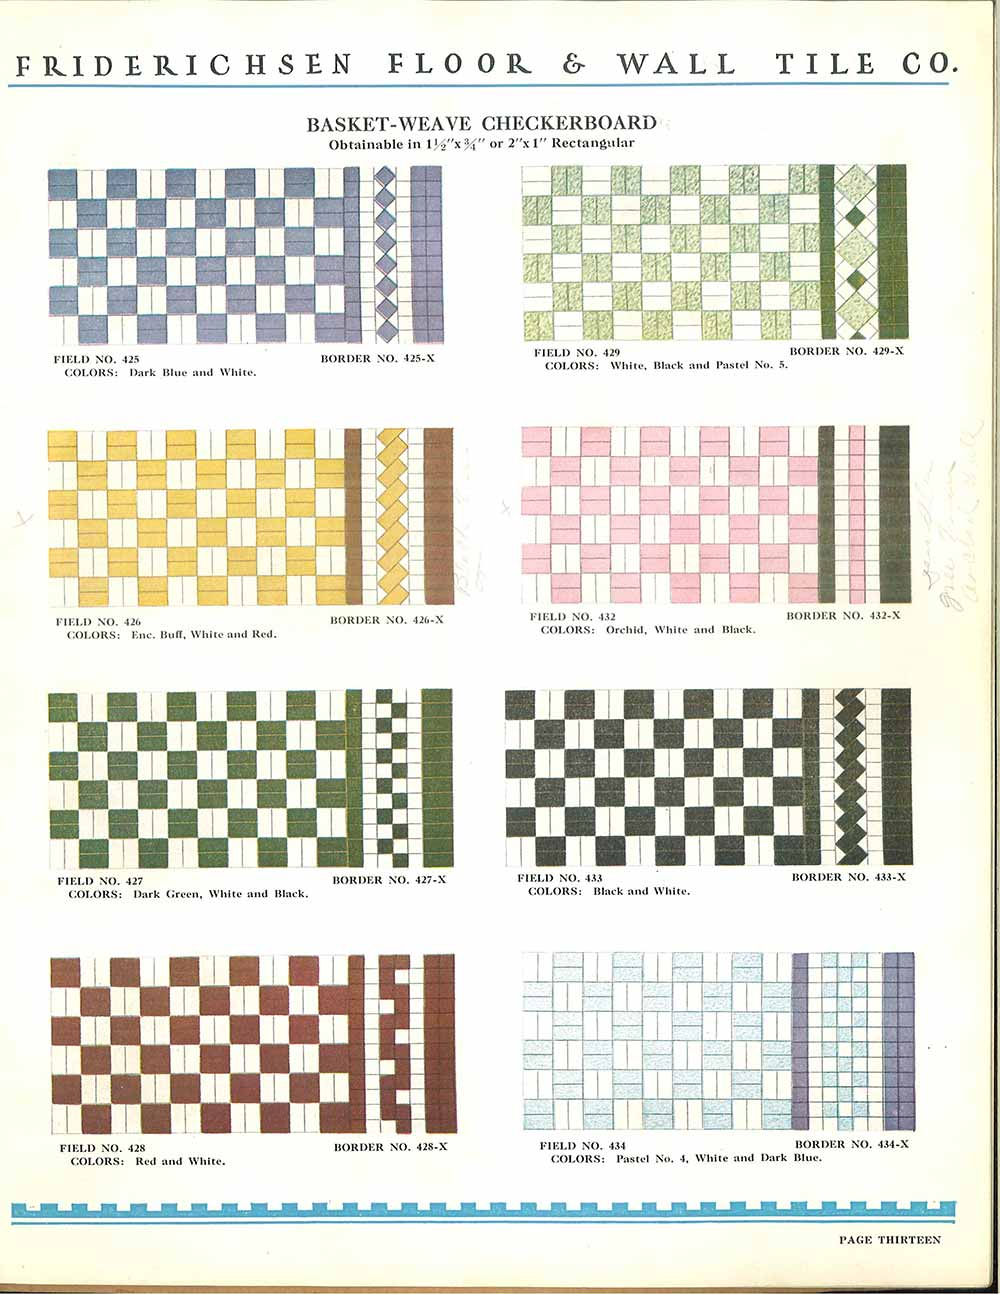 Vintage Floor Tile Patterns And Colors 1930s